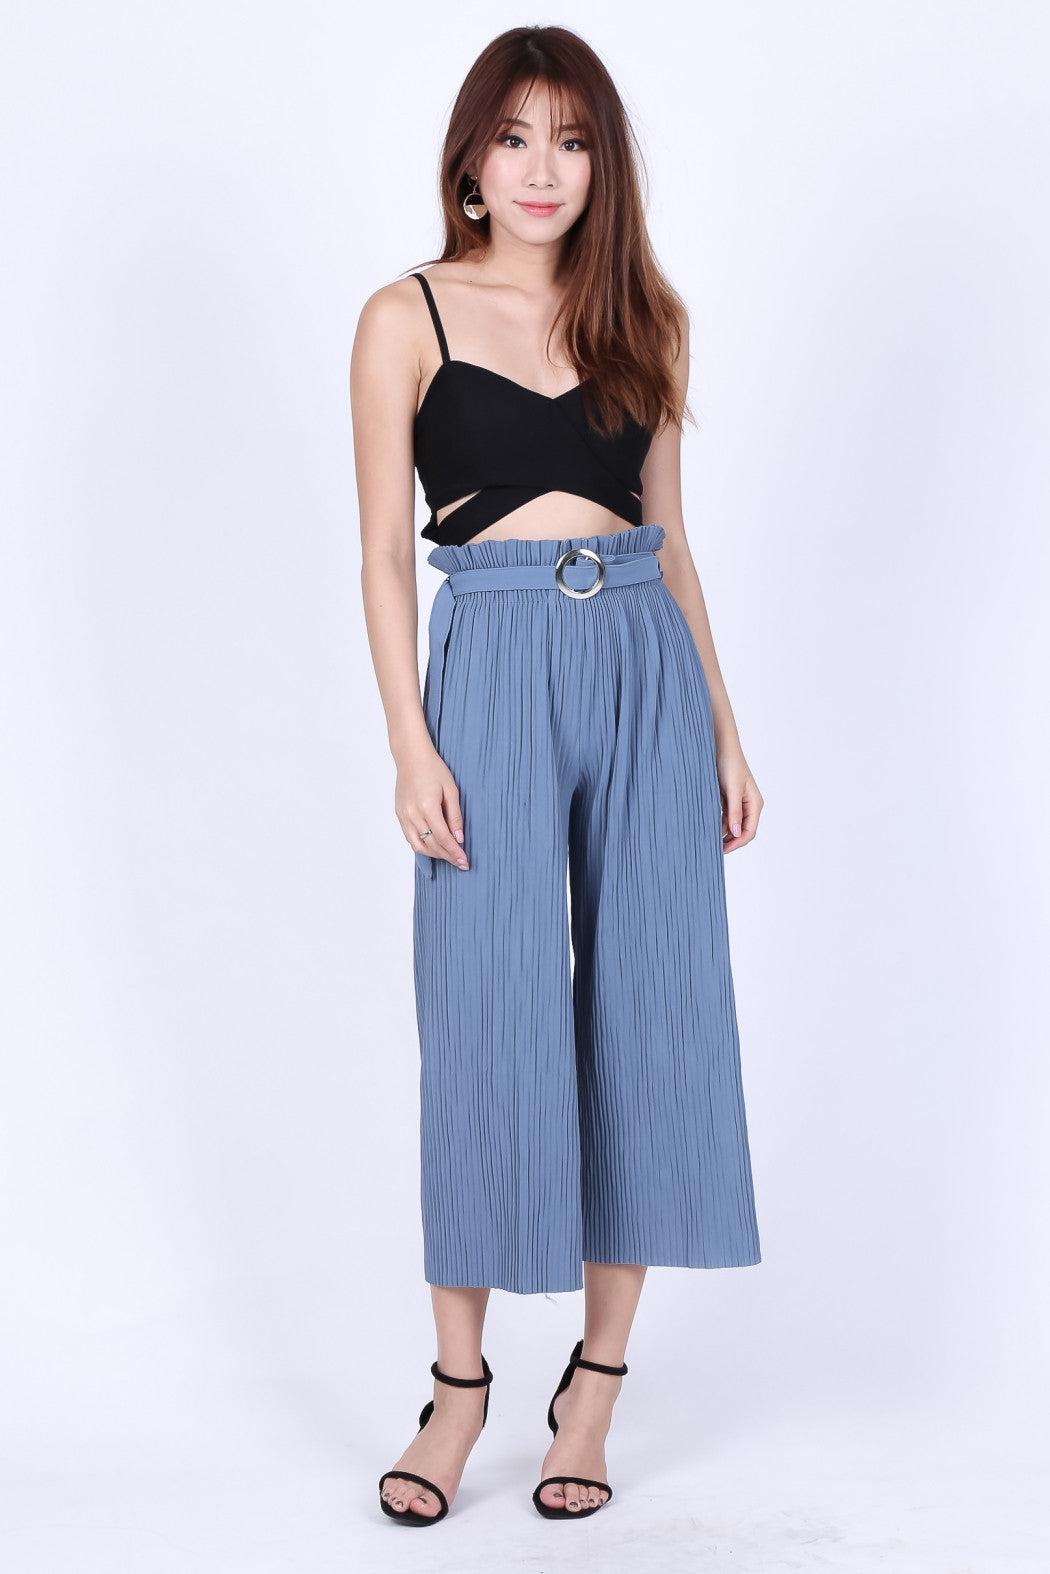 *RESTOCKED* OFF DUTY PLEATED CULOTTES IN OCEAN BLUE - TOPAZETTE